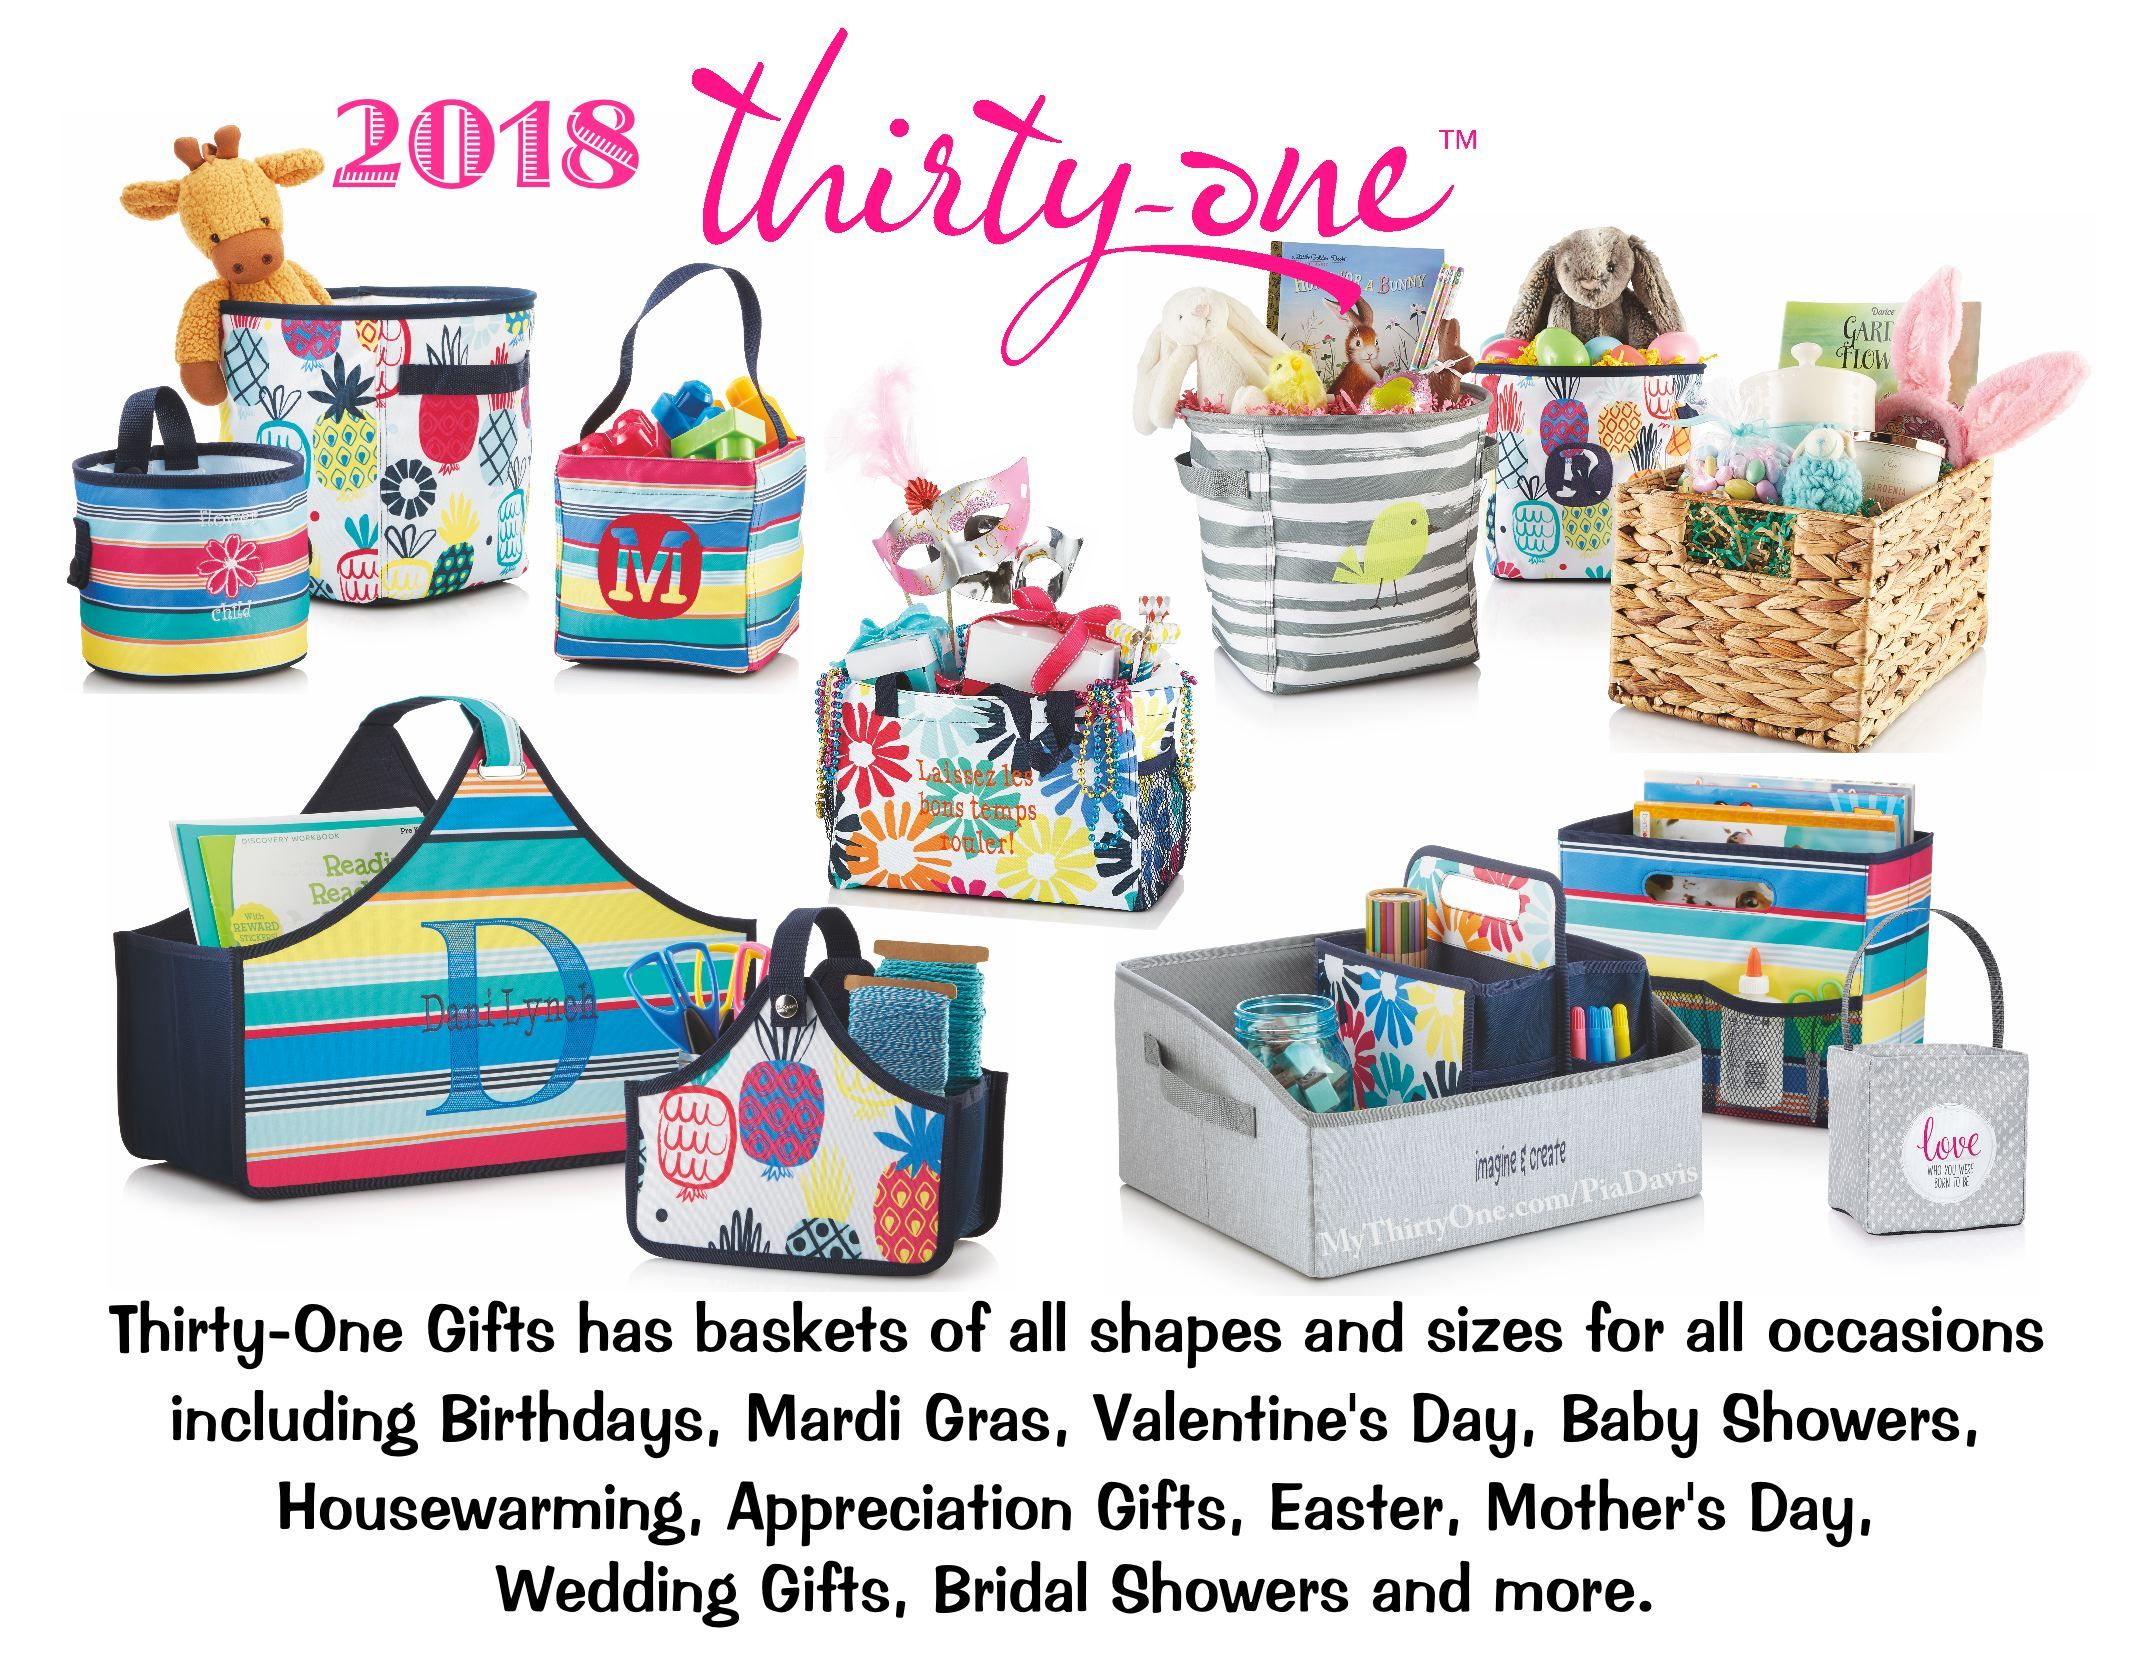 31 2018 thirty one gifts has baskets of all shapes and sizes for including birthdays mardi gras valentines day baby showers housewarming appreciation gifts hostess gifts easter mothers day wedding gifts negle Image collections